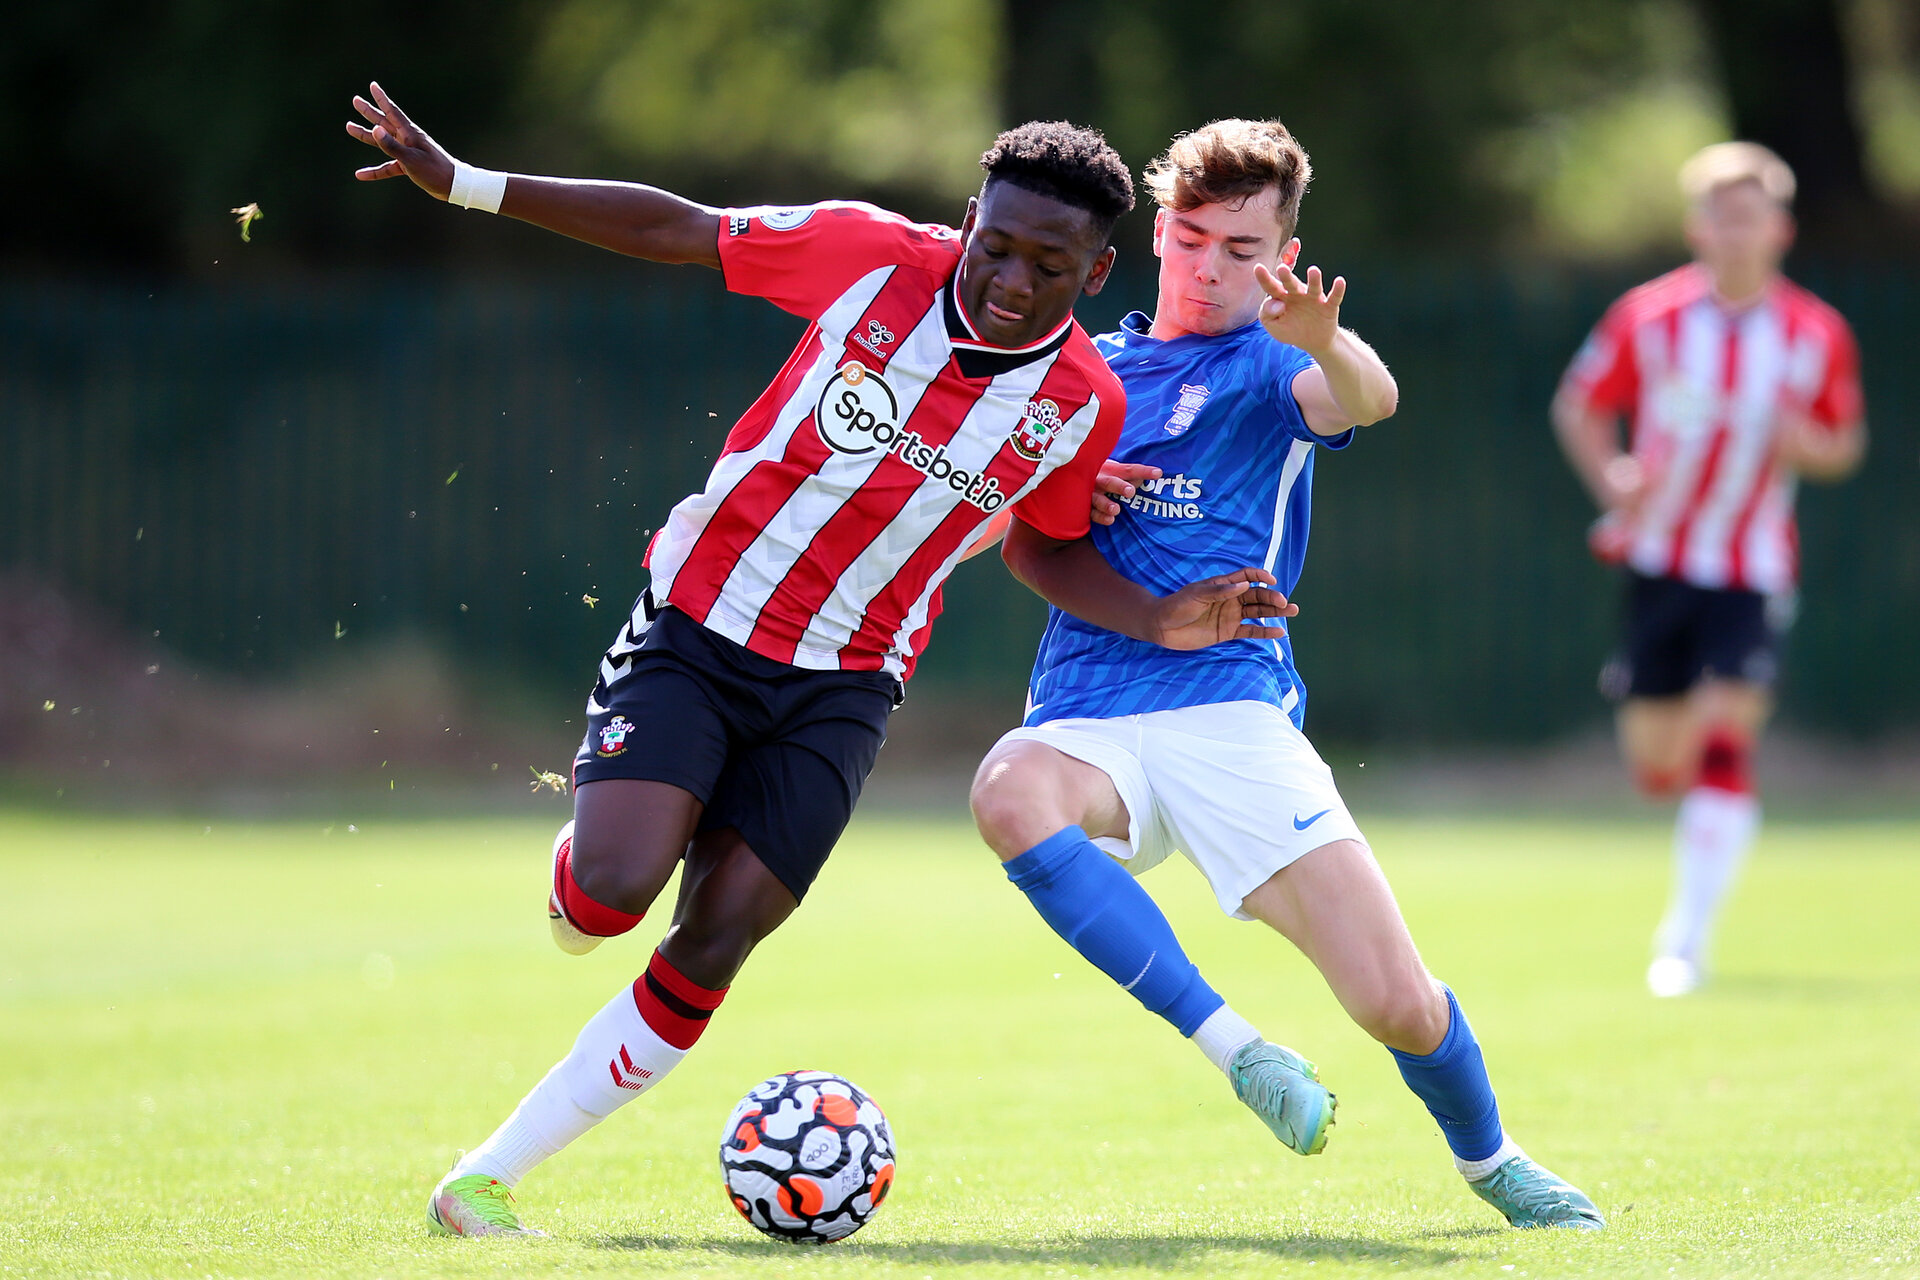 BIRMINGHAM, ENGLAND - SEPTEMBER 27:  during the Premier League 2 match between Birmingham City and Southampton B Team at Wast Hills Training Ground on September 27, 2021 in Birmingham , England. (Photo by Isabelle Field/Southampton FC via Getty Images)